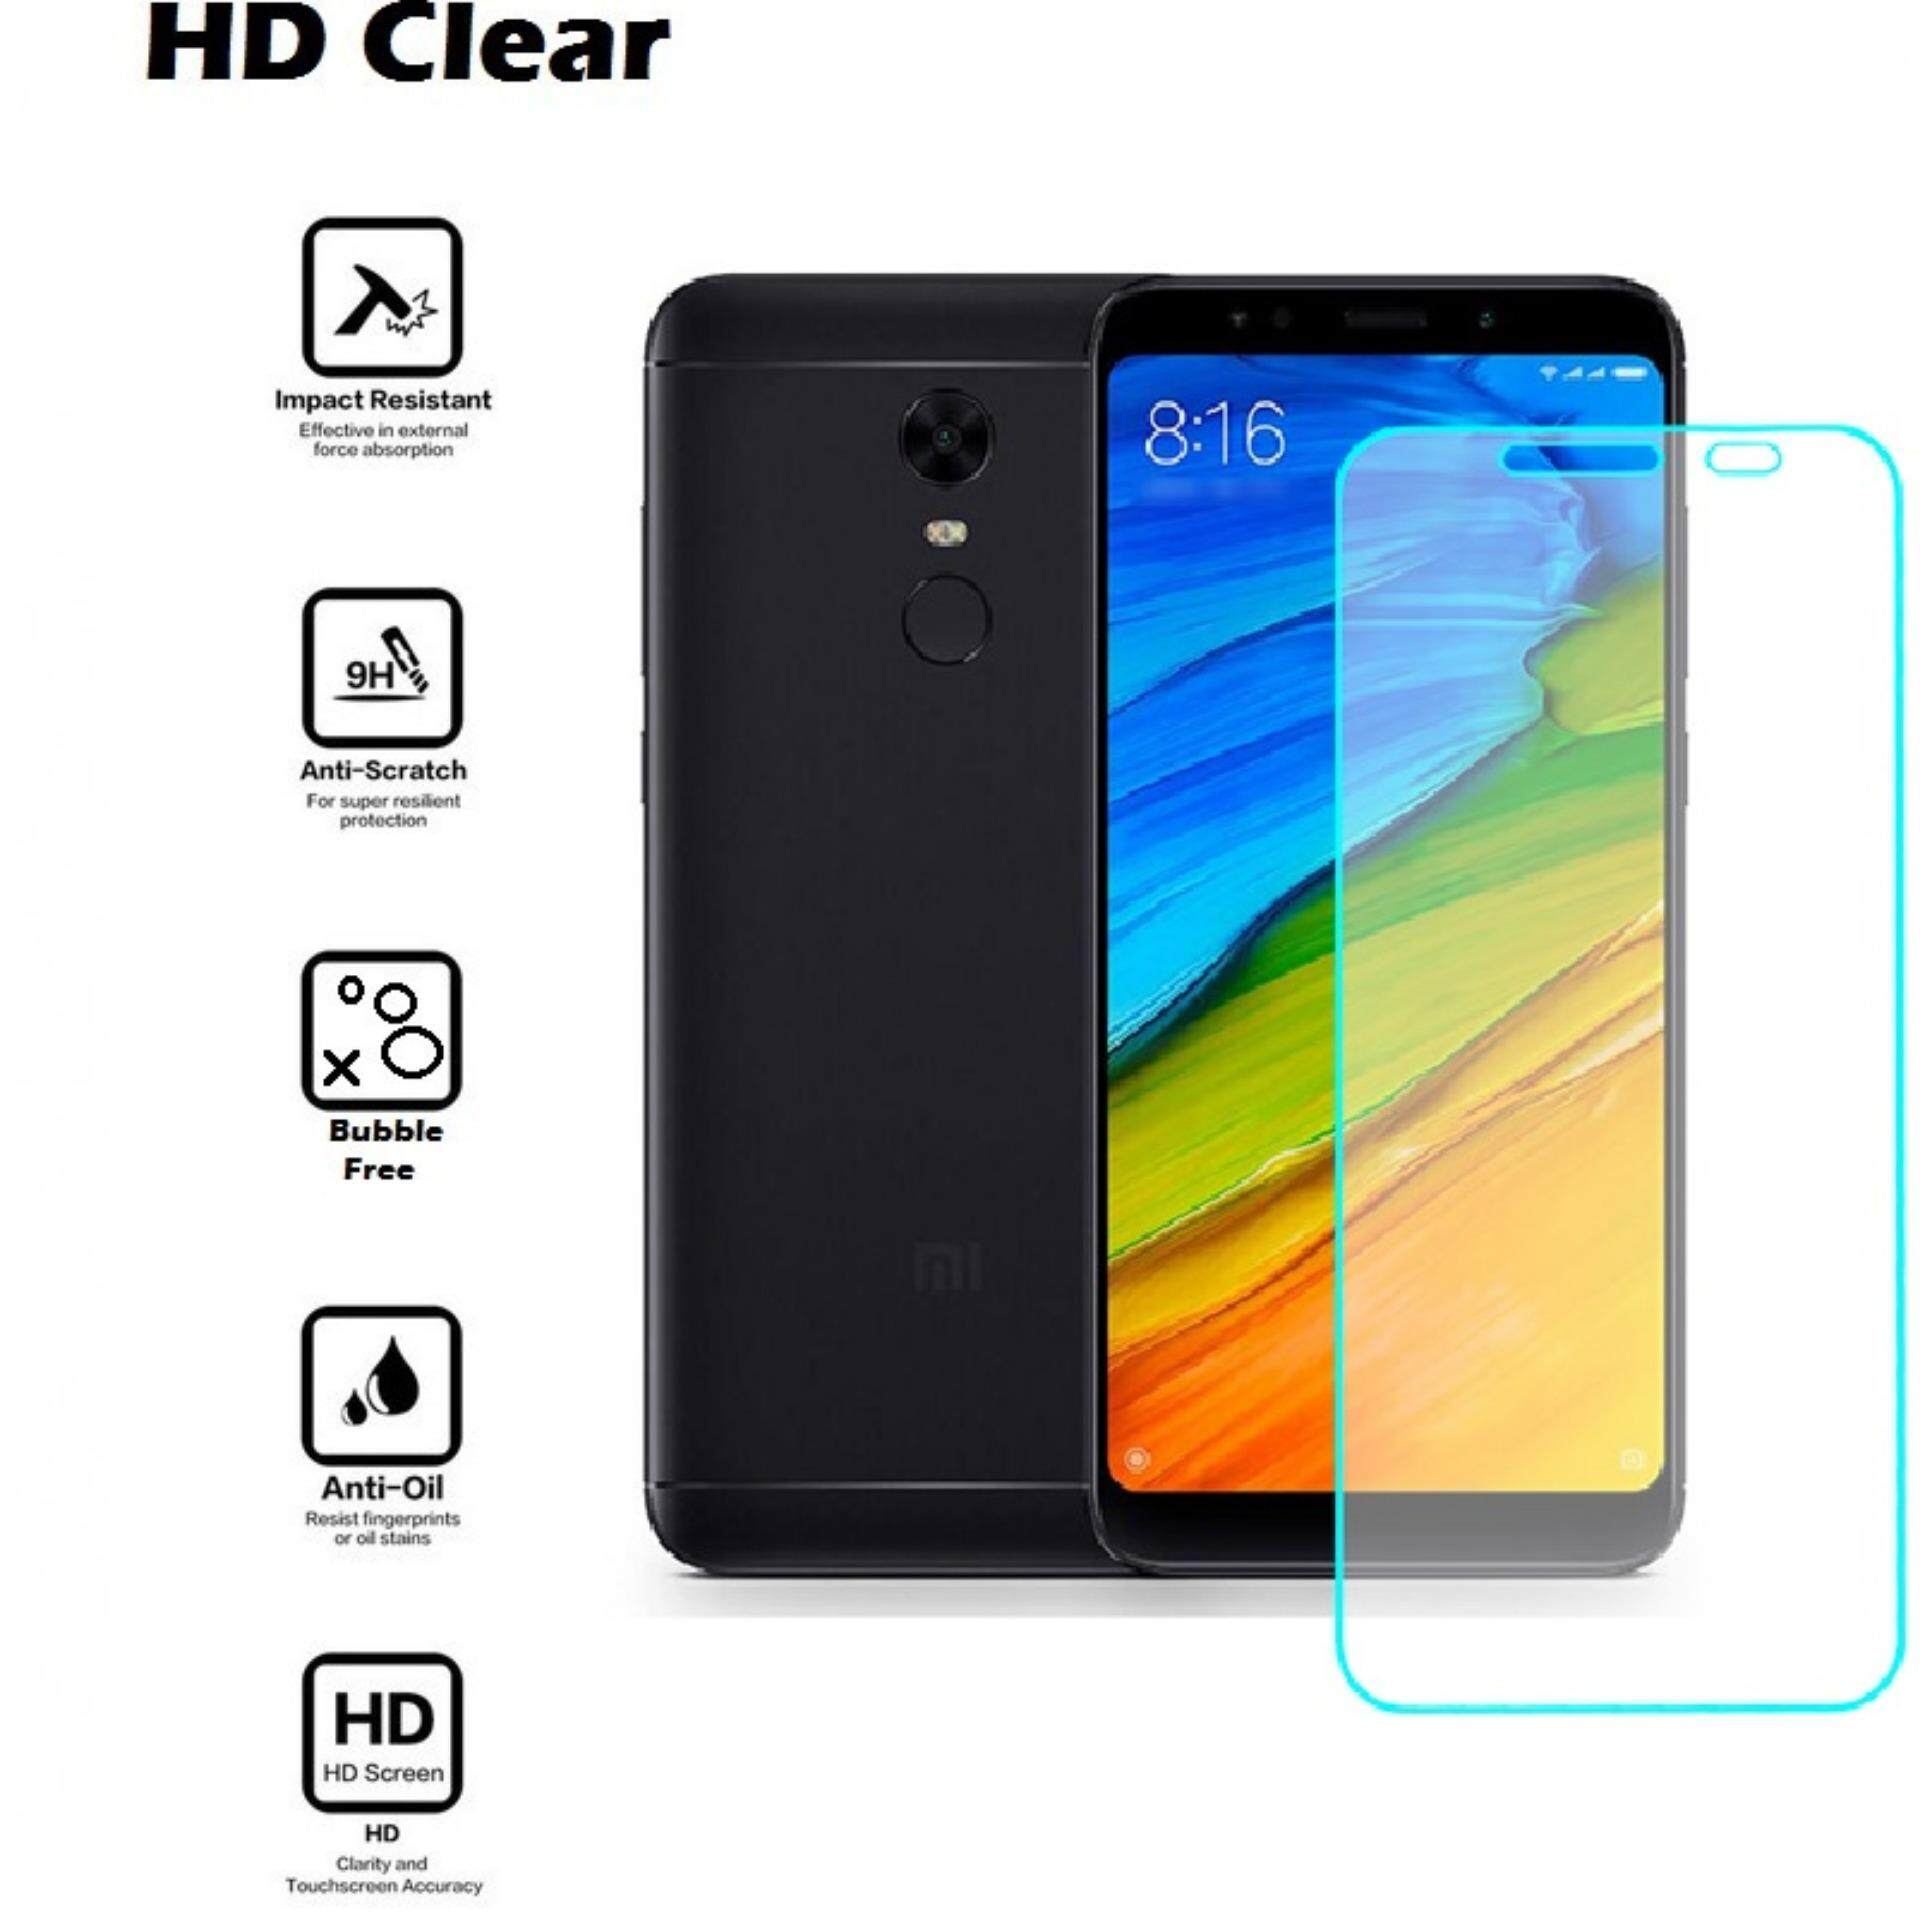 Features Xiaomi Redmi Note 4x Clear Hd Tempered Glass Screen Smile Redmi4x 5 Plus Protector